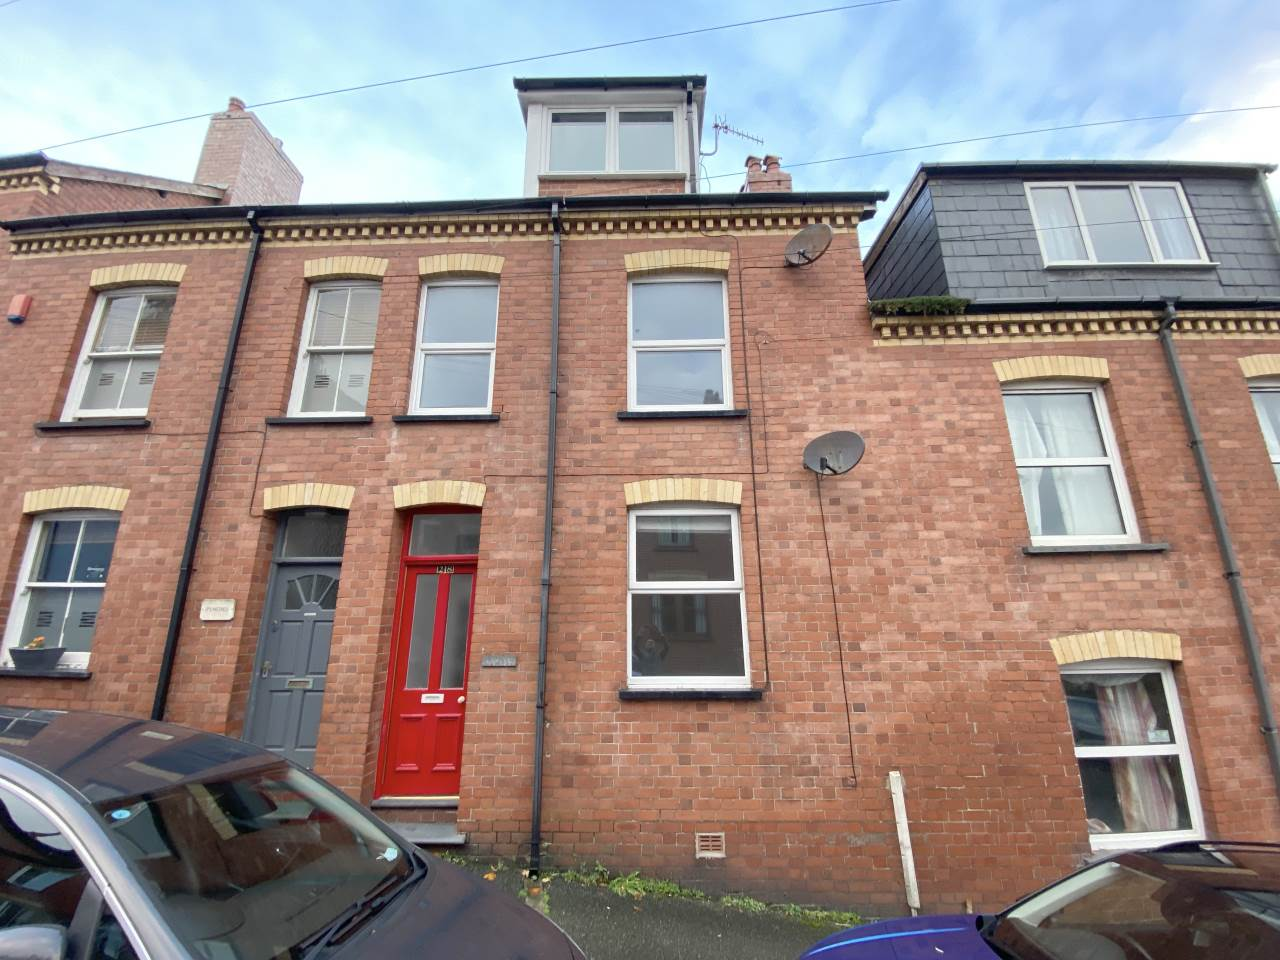 4 bed terraced house to rent in Edgehill Road - Property Image 1